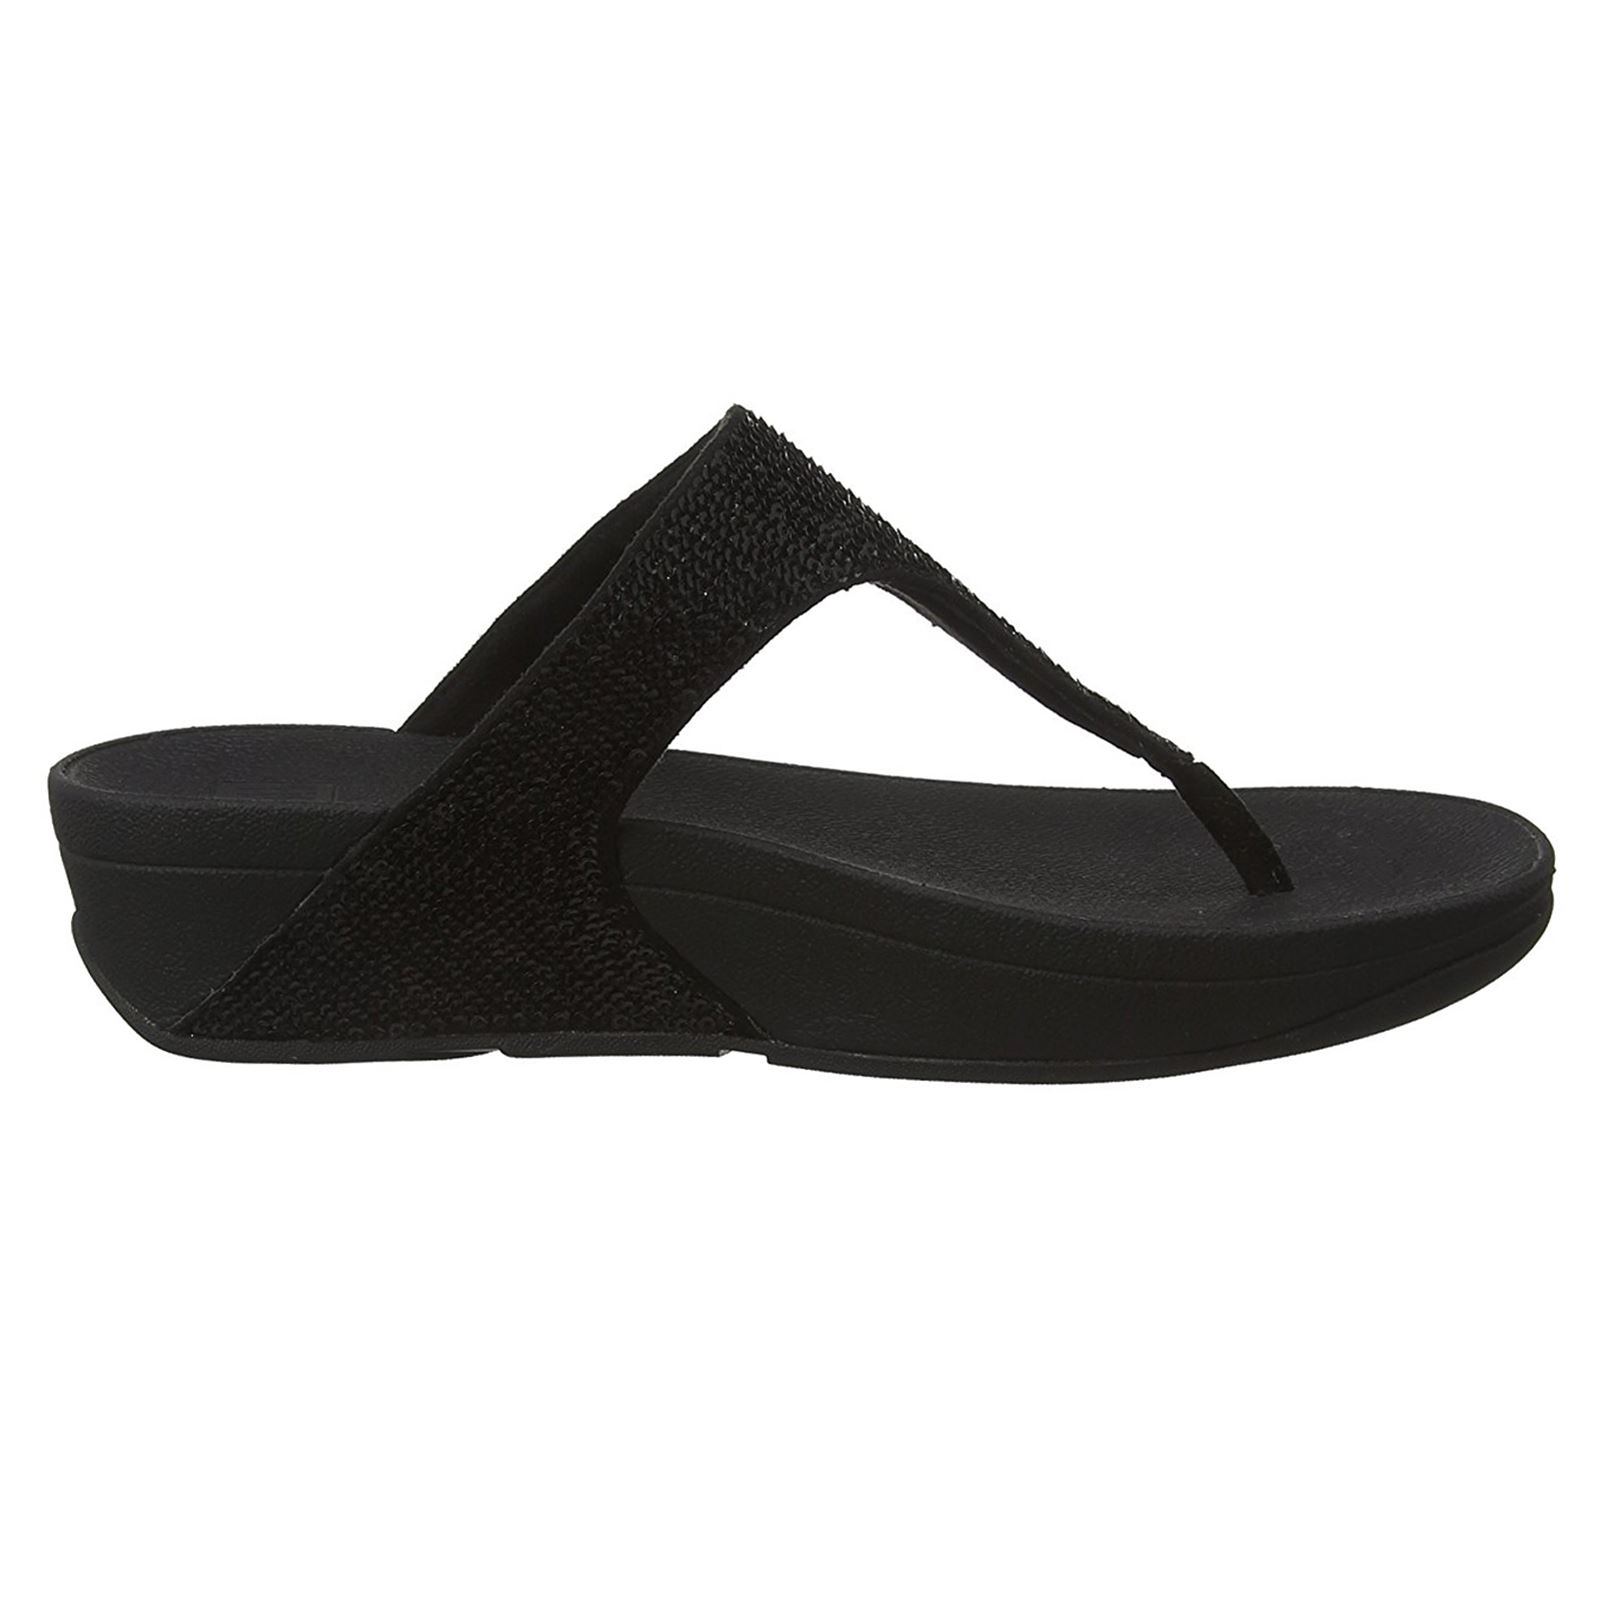 6215ad59924fdc Fitflop Electra Sandals Black